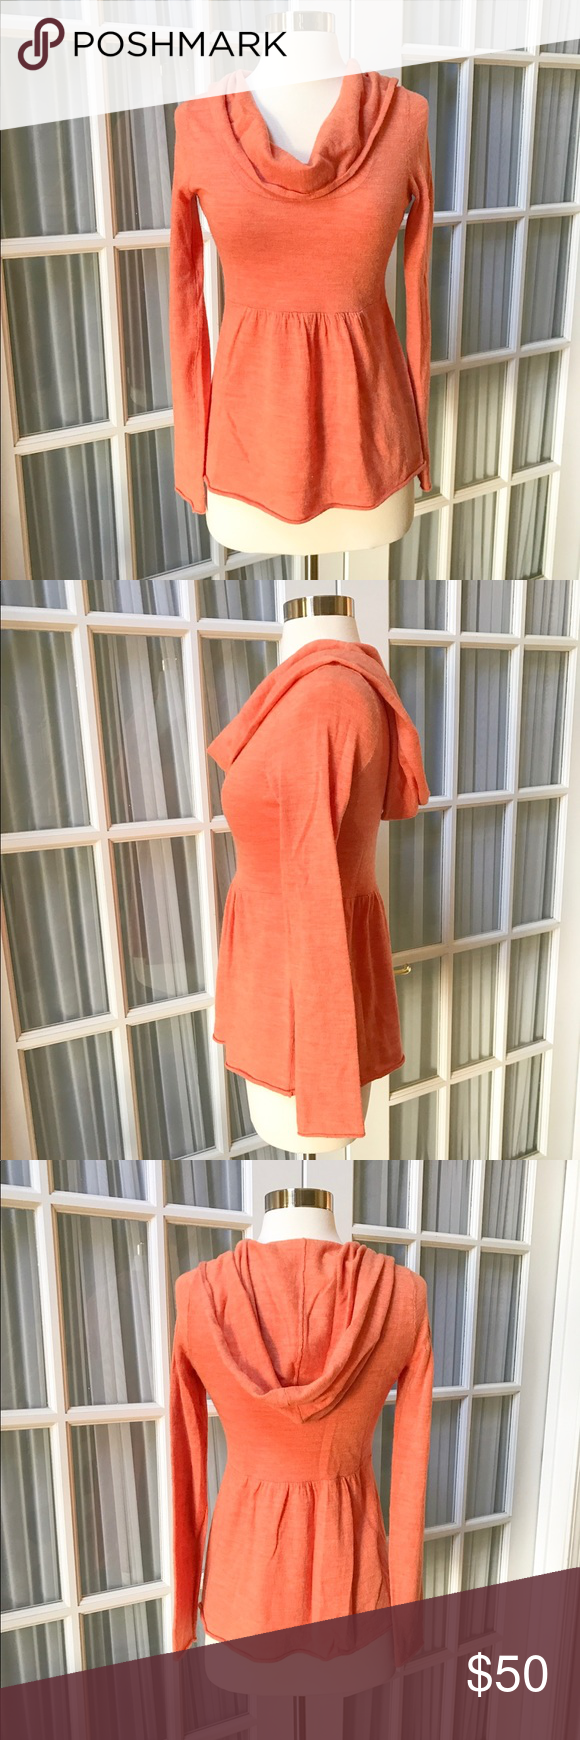 Anthropologie Hooded Orange Sweater Cute and cozy sweater by Moth ...